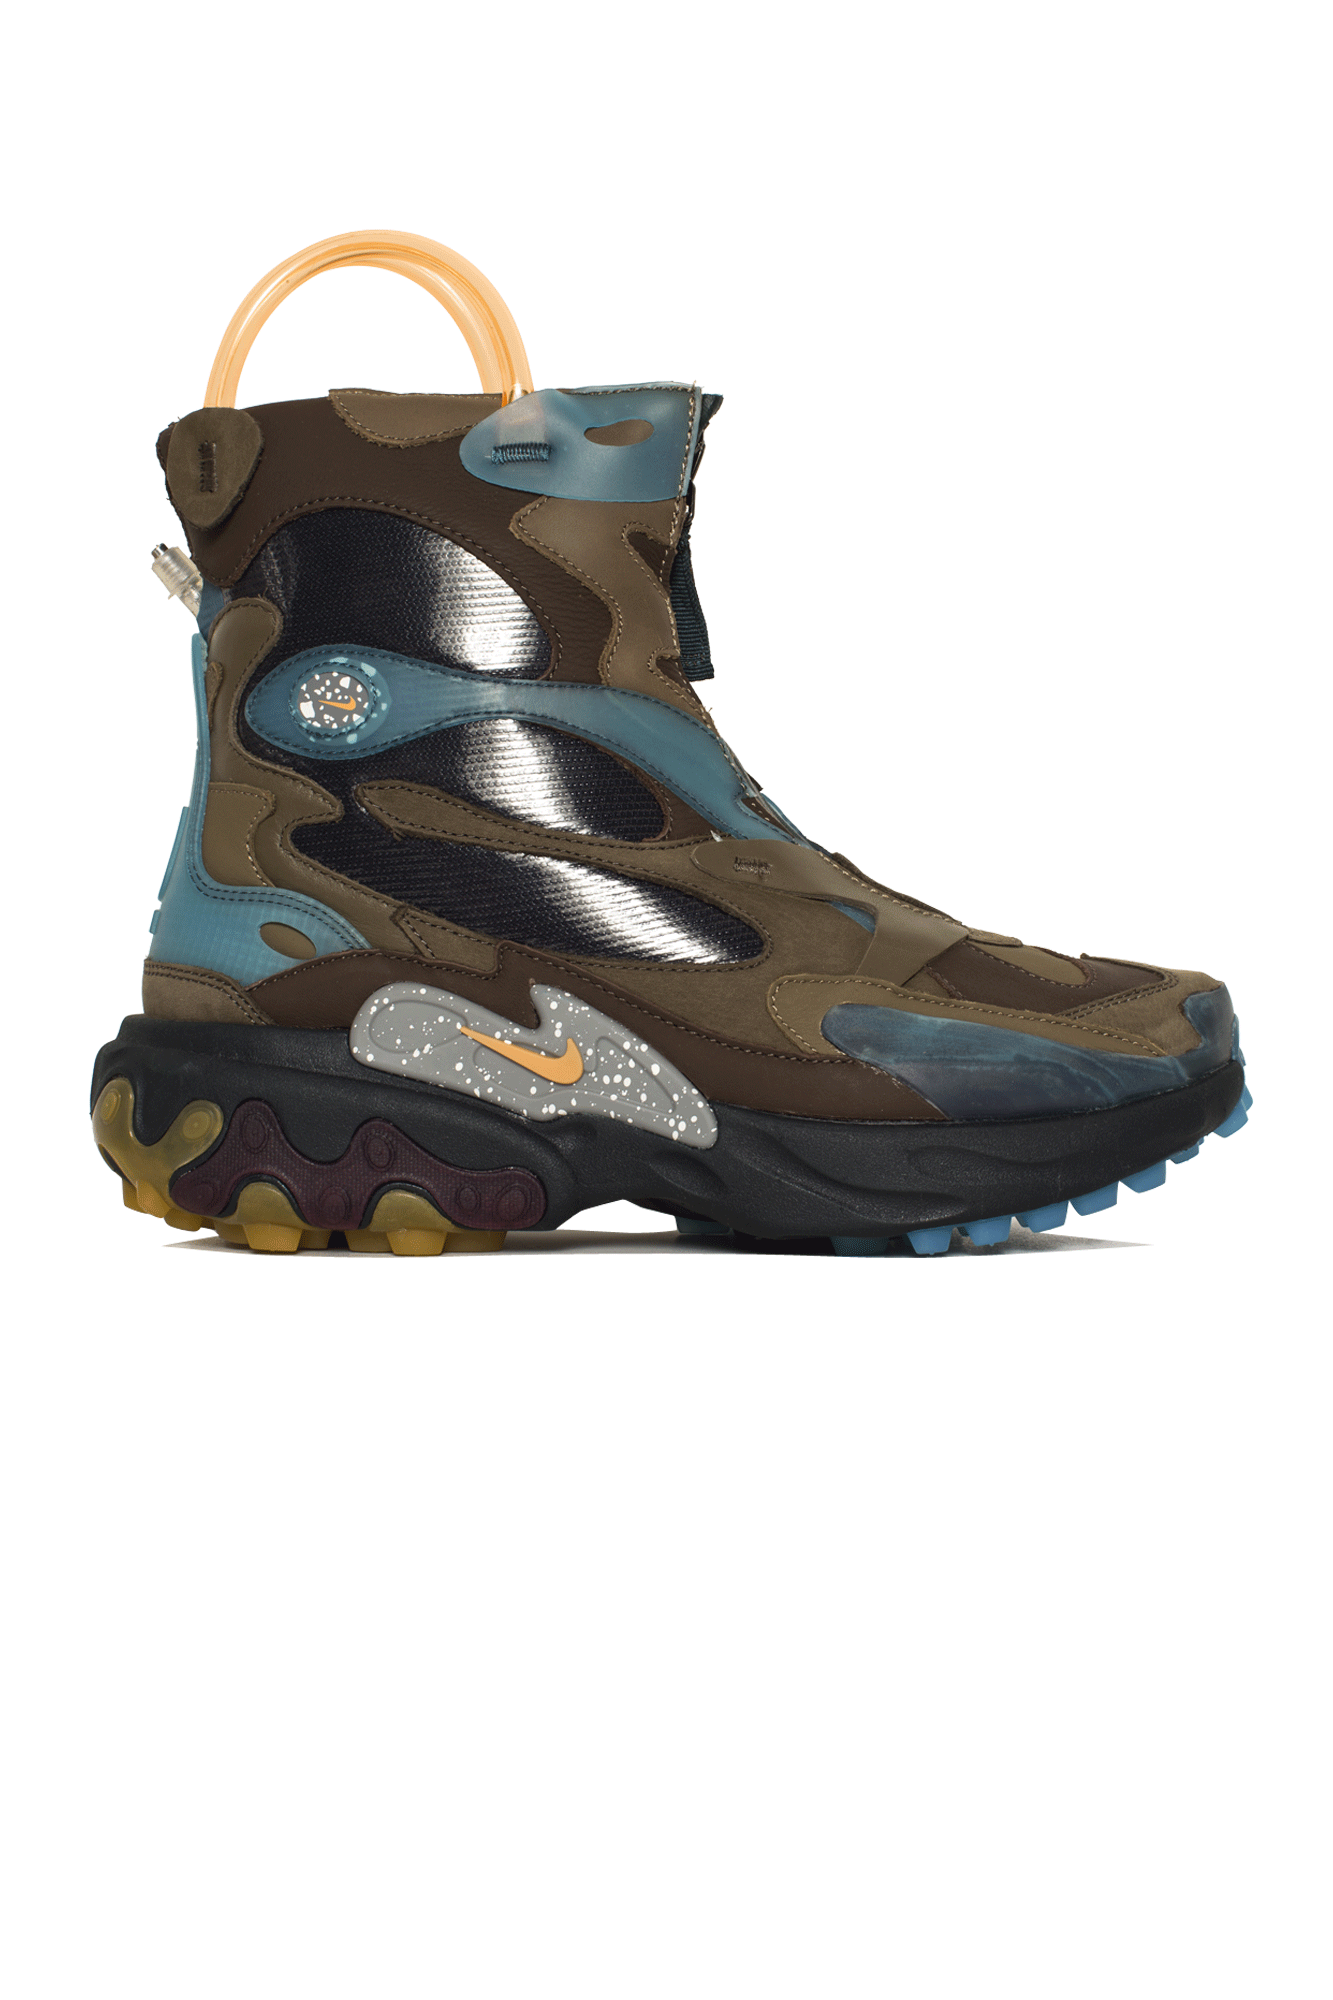 React Boot x Undercover Brown